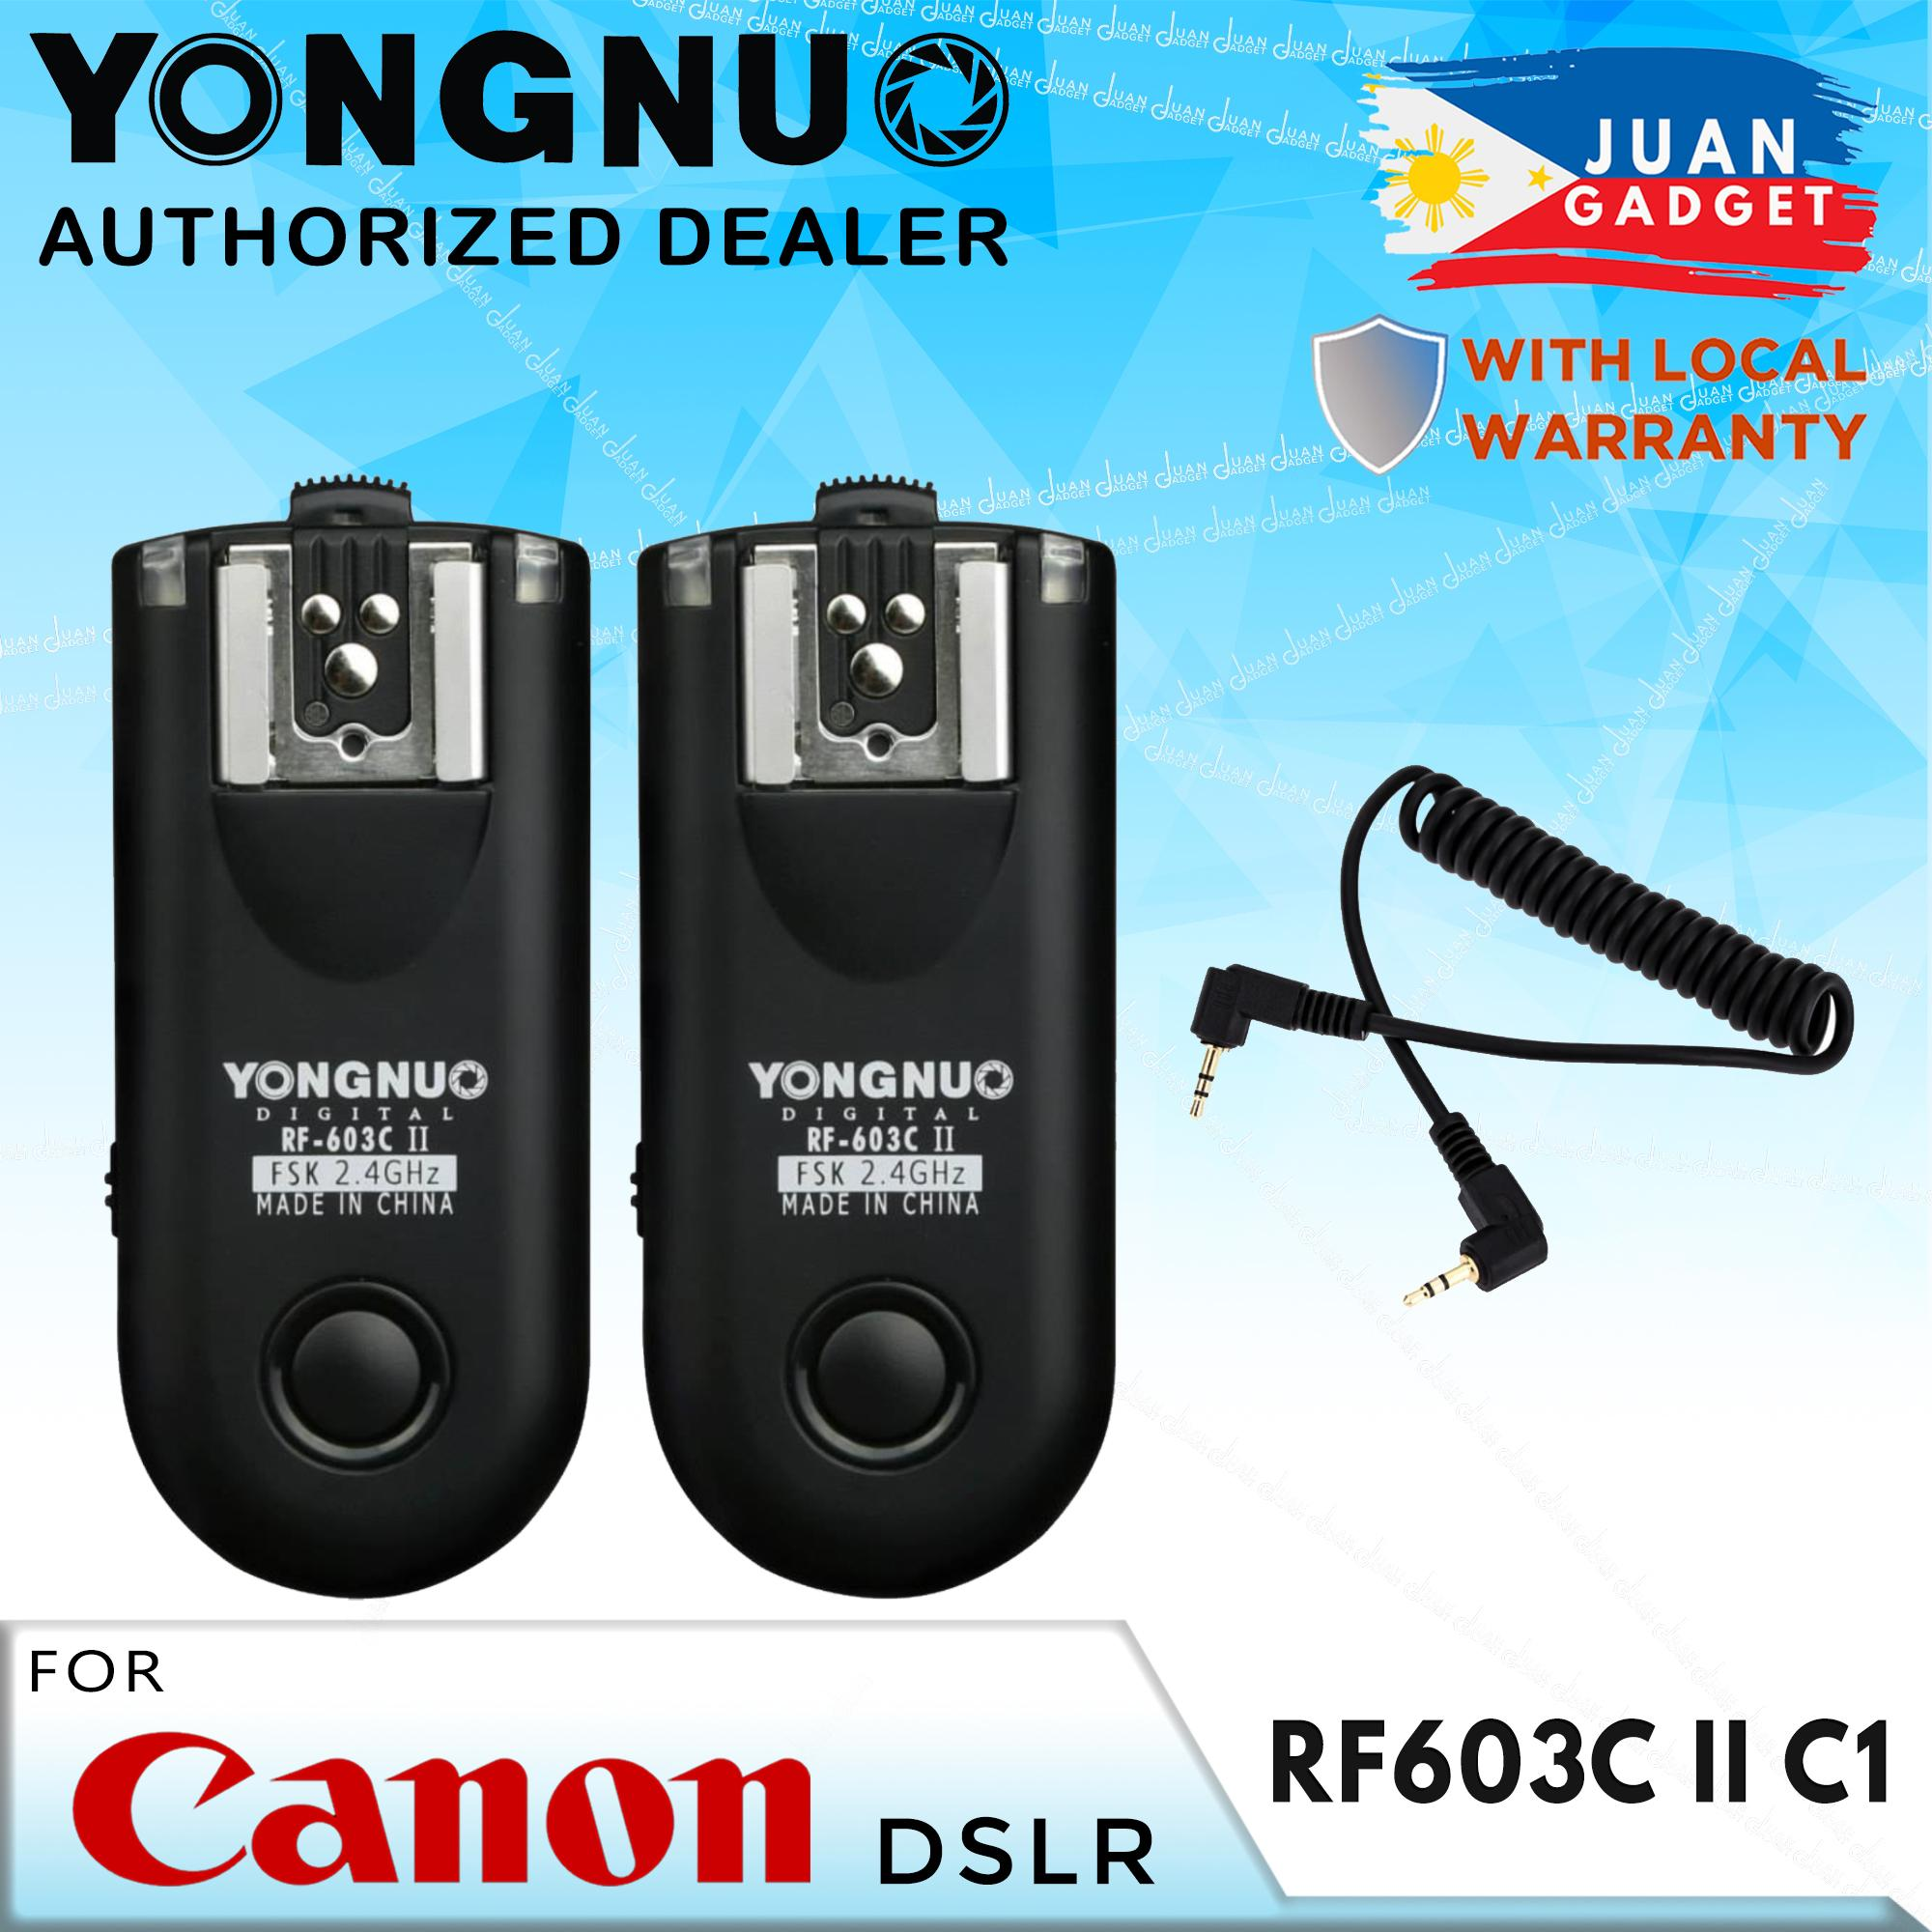 Yongnuo RF603 C II Wireless Flash Trigger Kit for Canon 2 5mm Connection